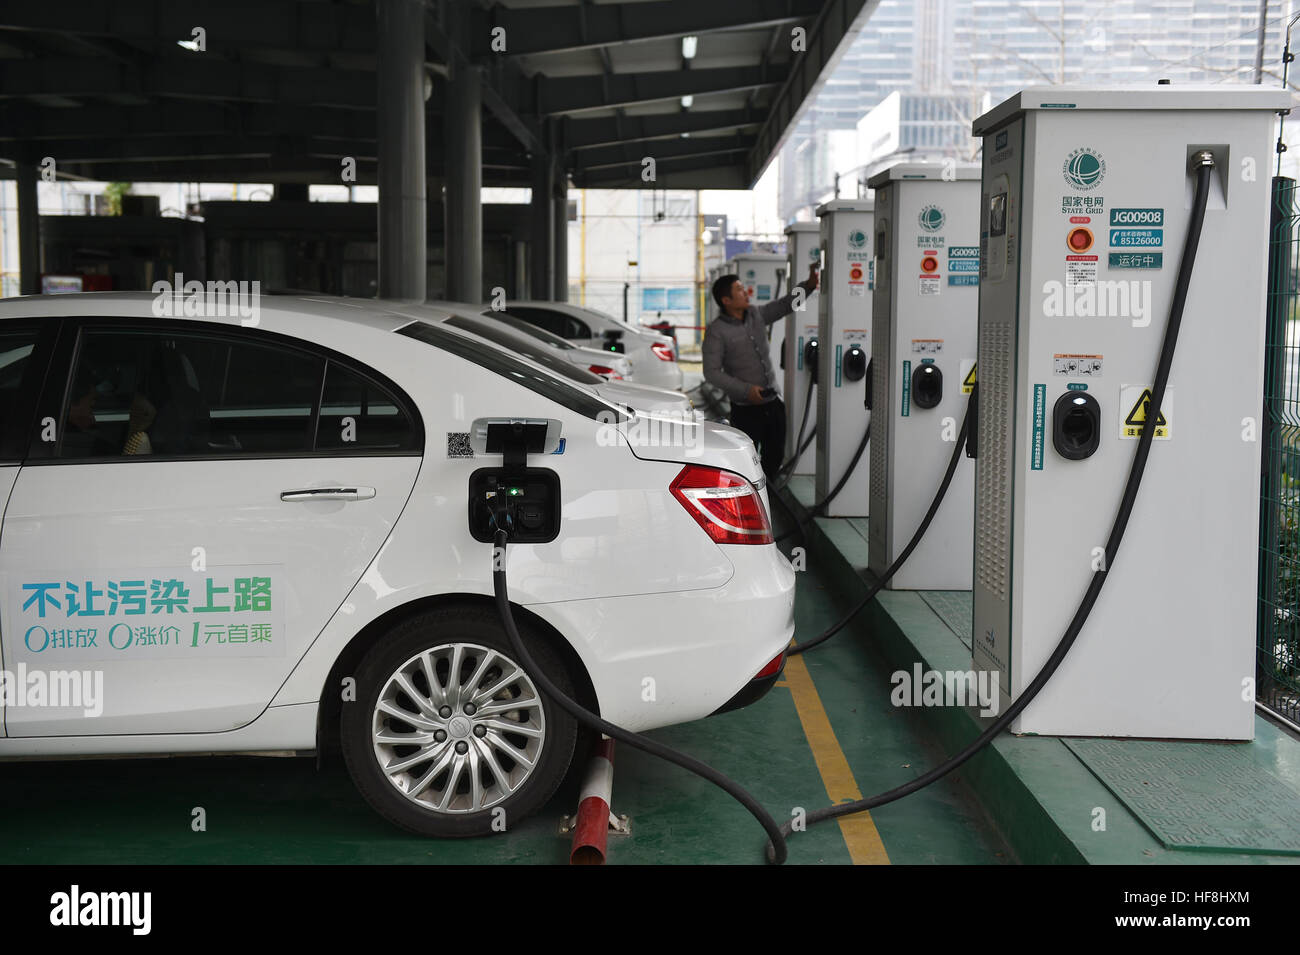 Hangzhou, China's Zhejiang Province. 29th Dec, 2016. A driver charges his electric car at a charging station - Stock Image